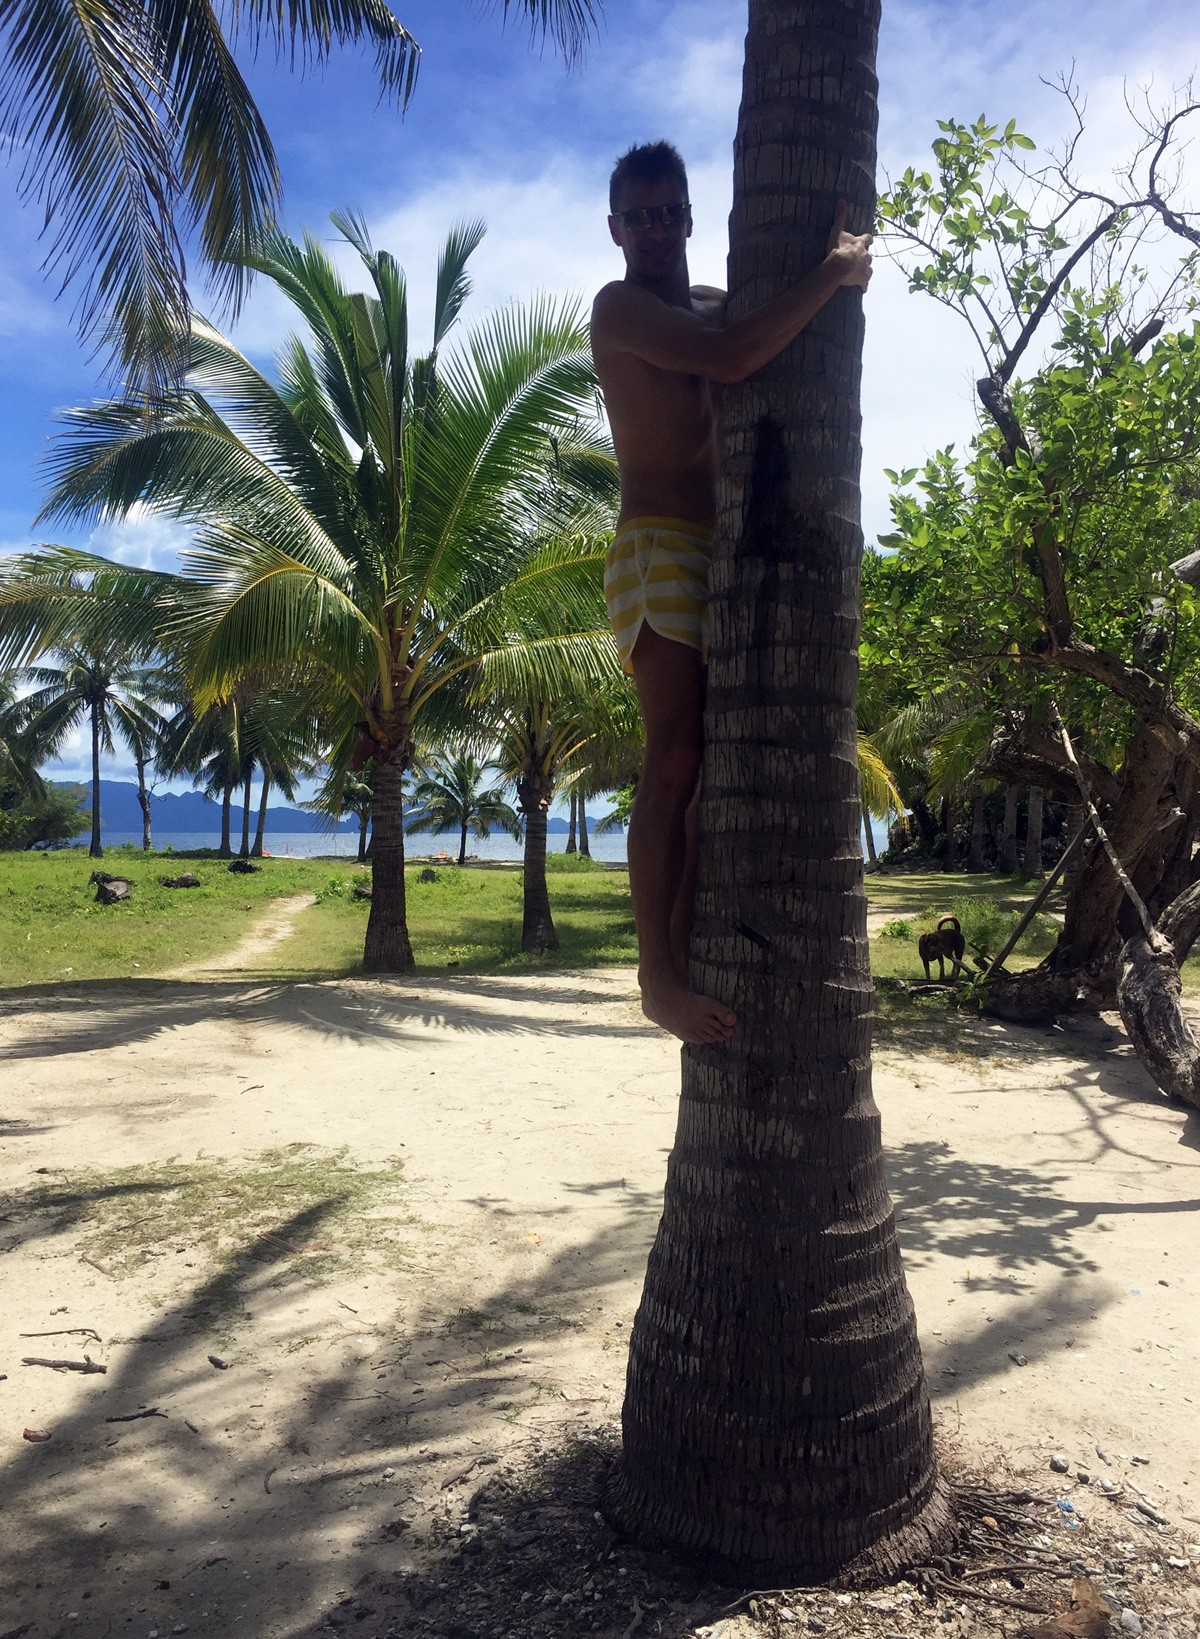 Andrei on Palm tree in Malcapuya island - Travelblogstories